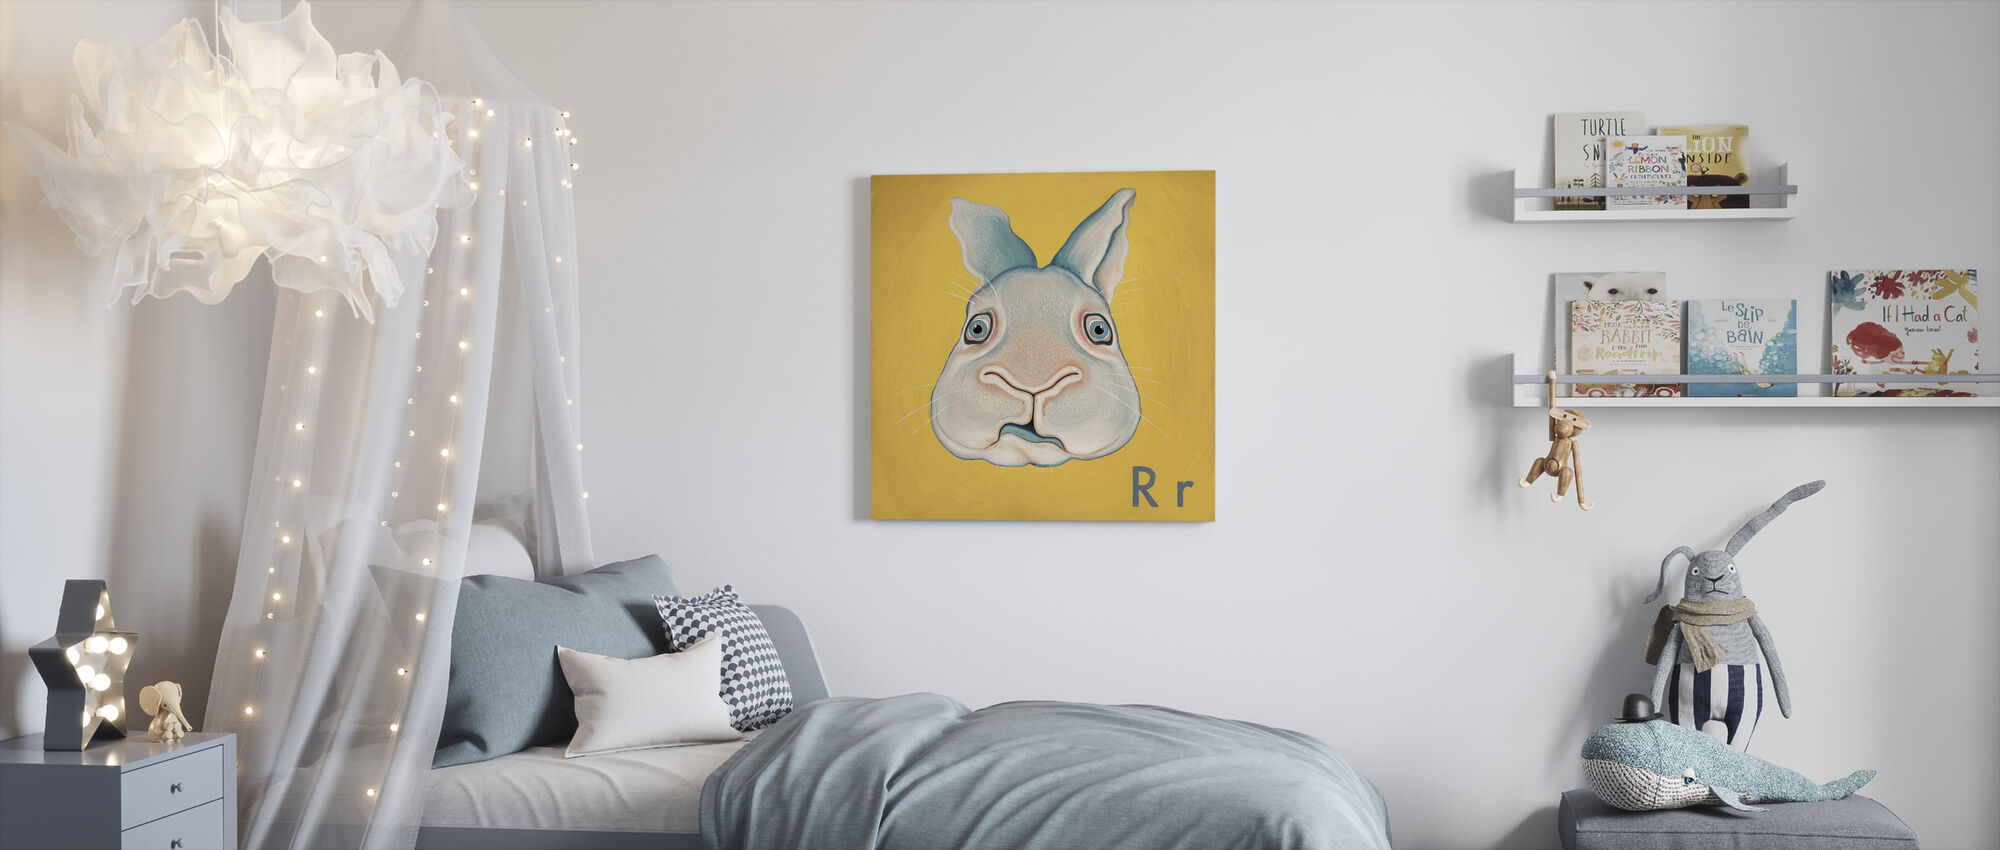 Rabbit with R - Canvas print - Kids Room